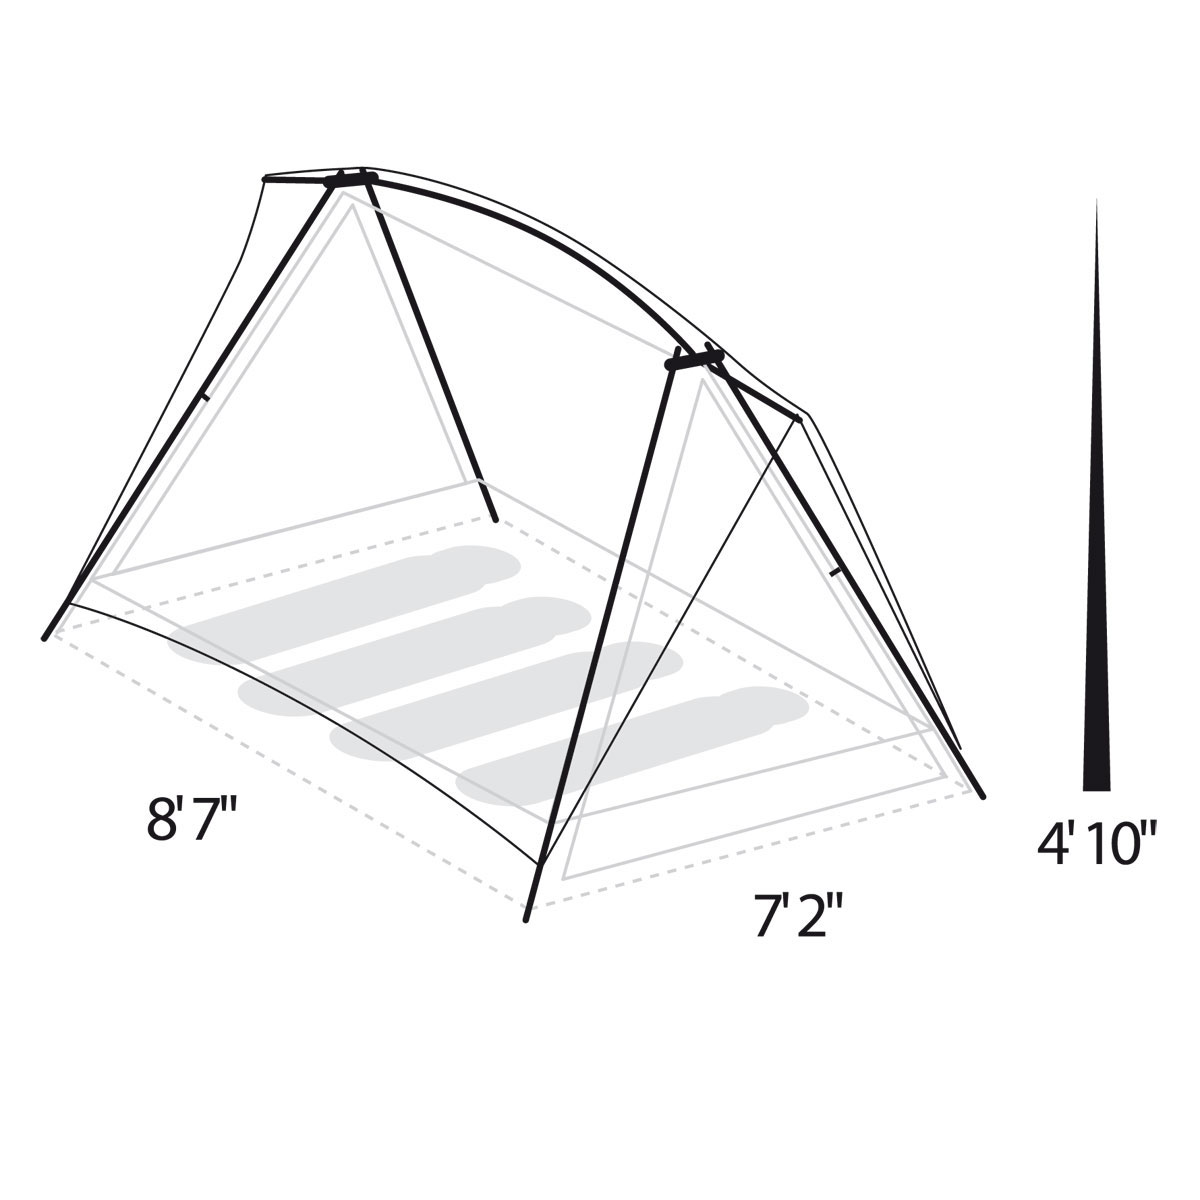 Timberline® 4 Person Tent. 1  sc 1 st  Tents | Eureka! - Johnson Outdoors & Timberline® 4 Person Tent | Eureka!